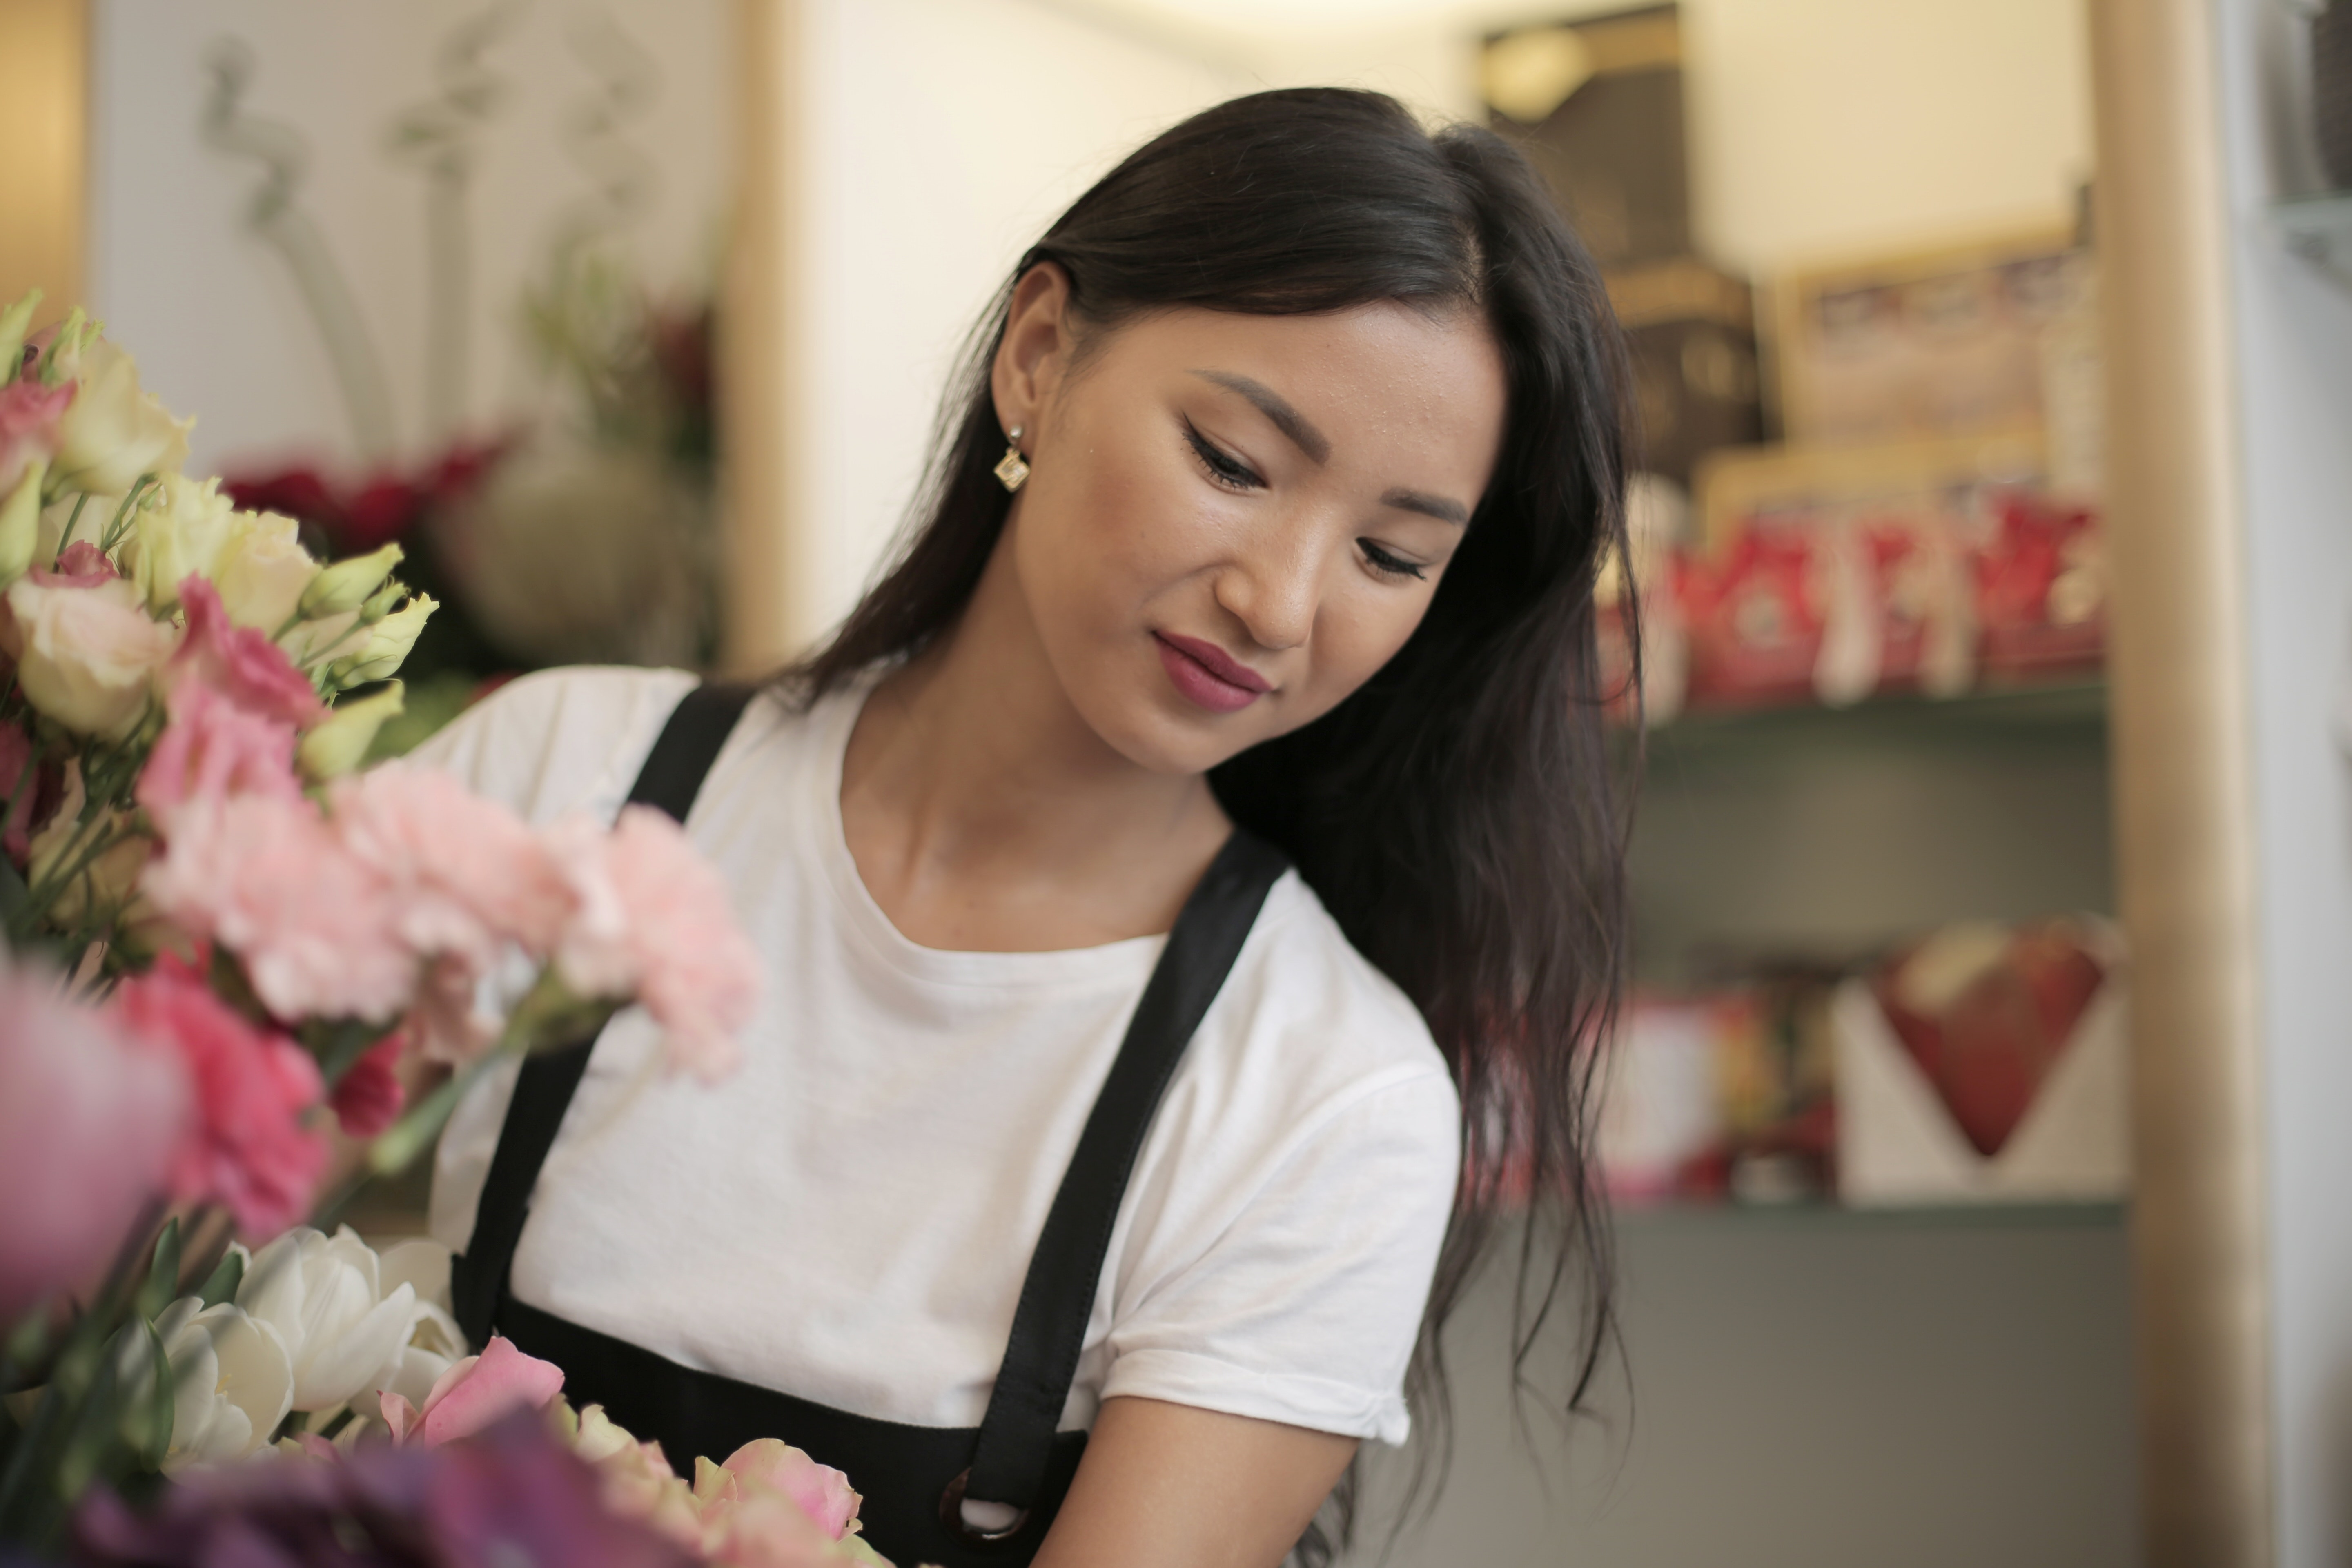 happy-woman-in-uniform-with-flowers-in-shop-3933005